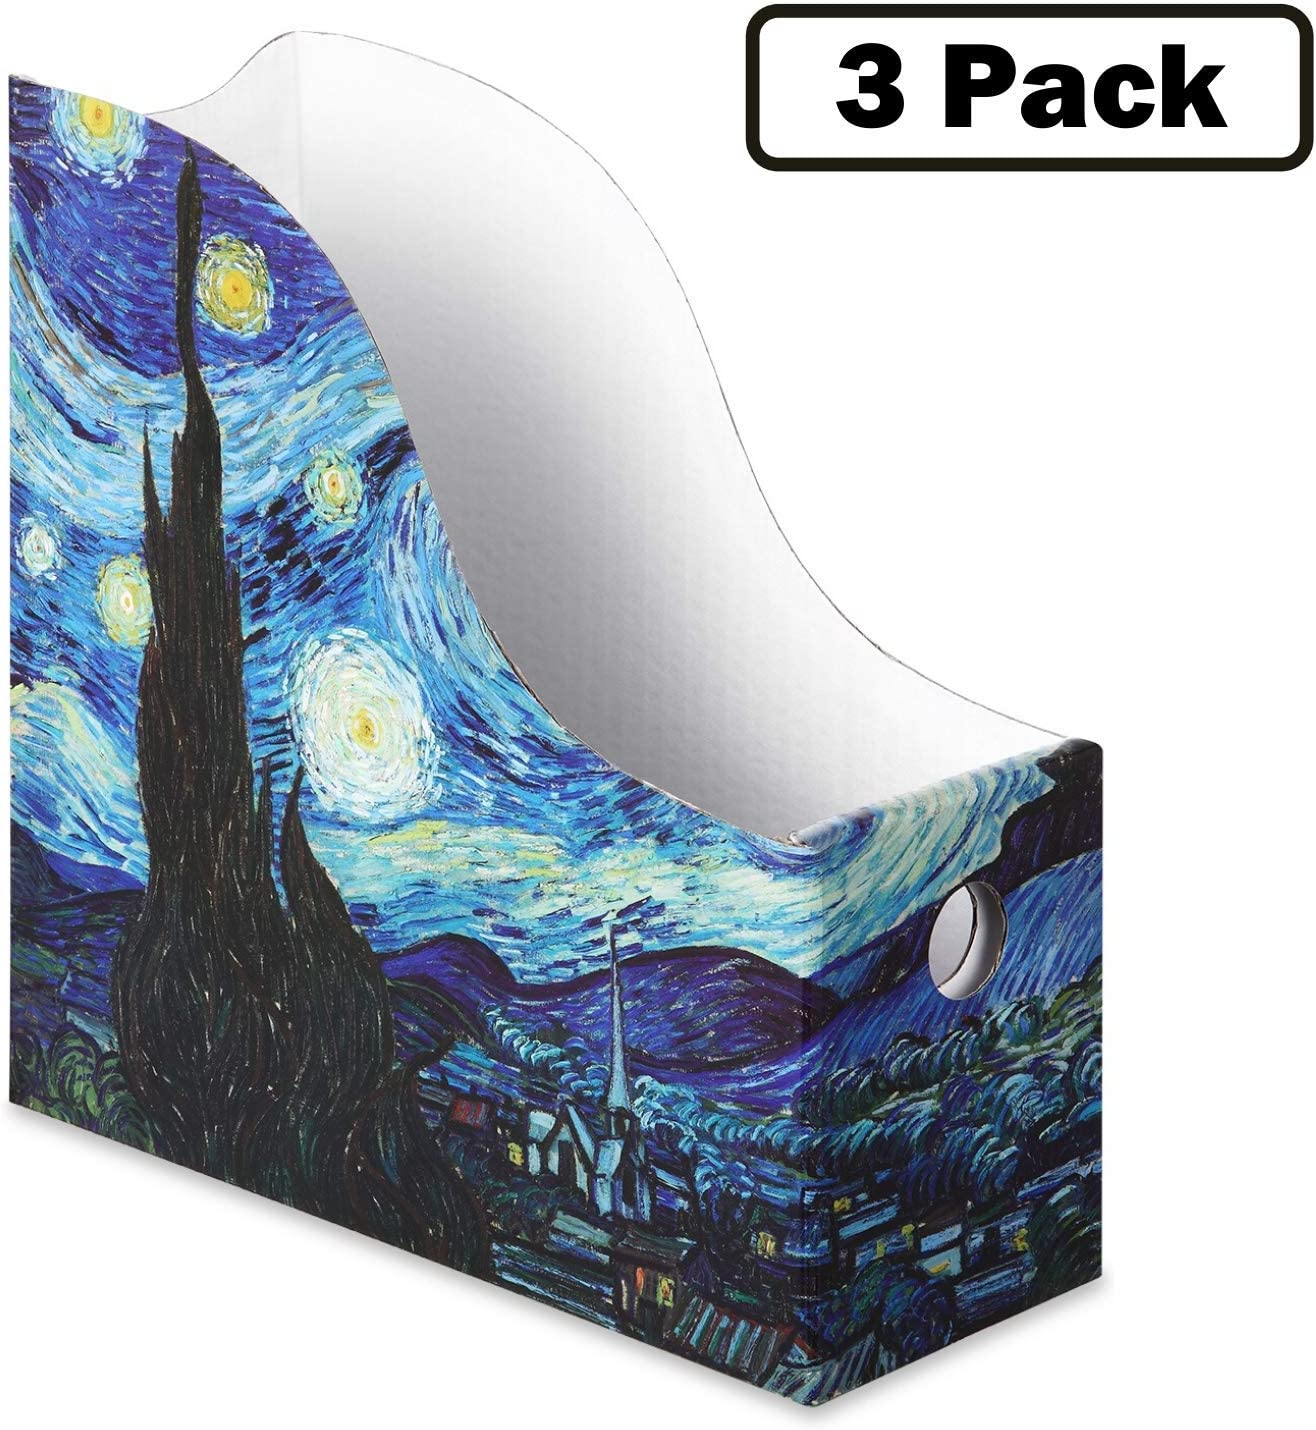 Sturdy Cardboard Magazine Holders, Folder Holders (3 Pack, Starry Night), Stunning Impressions Design, Magazine Organizer, Folder Organizer, Storage Box, Book Bins, Desk File Holder Organizers